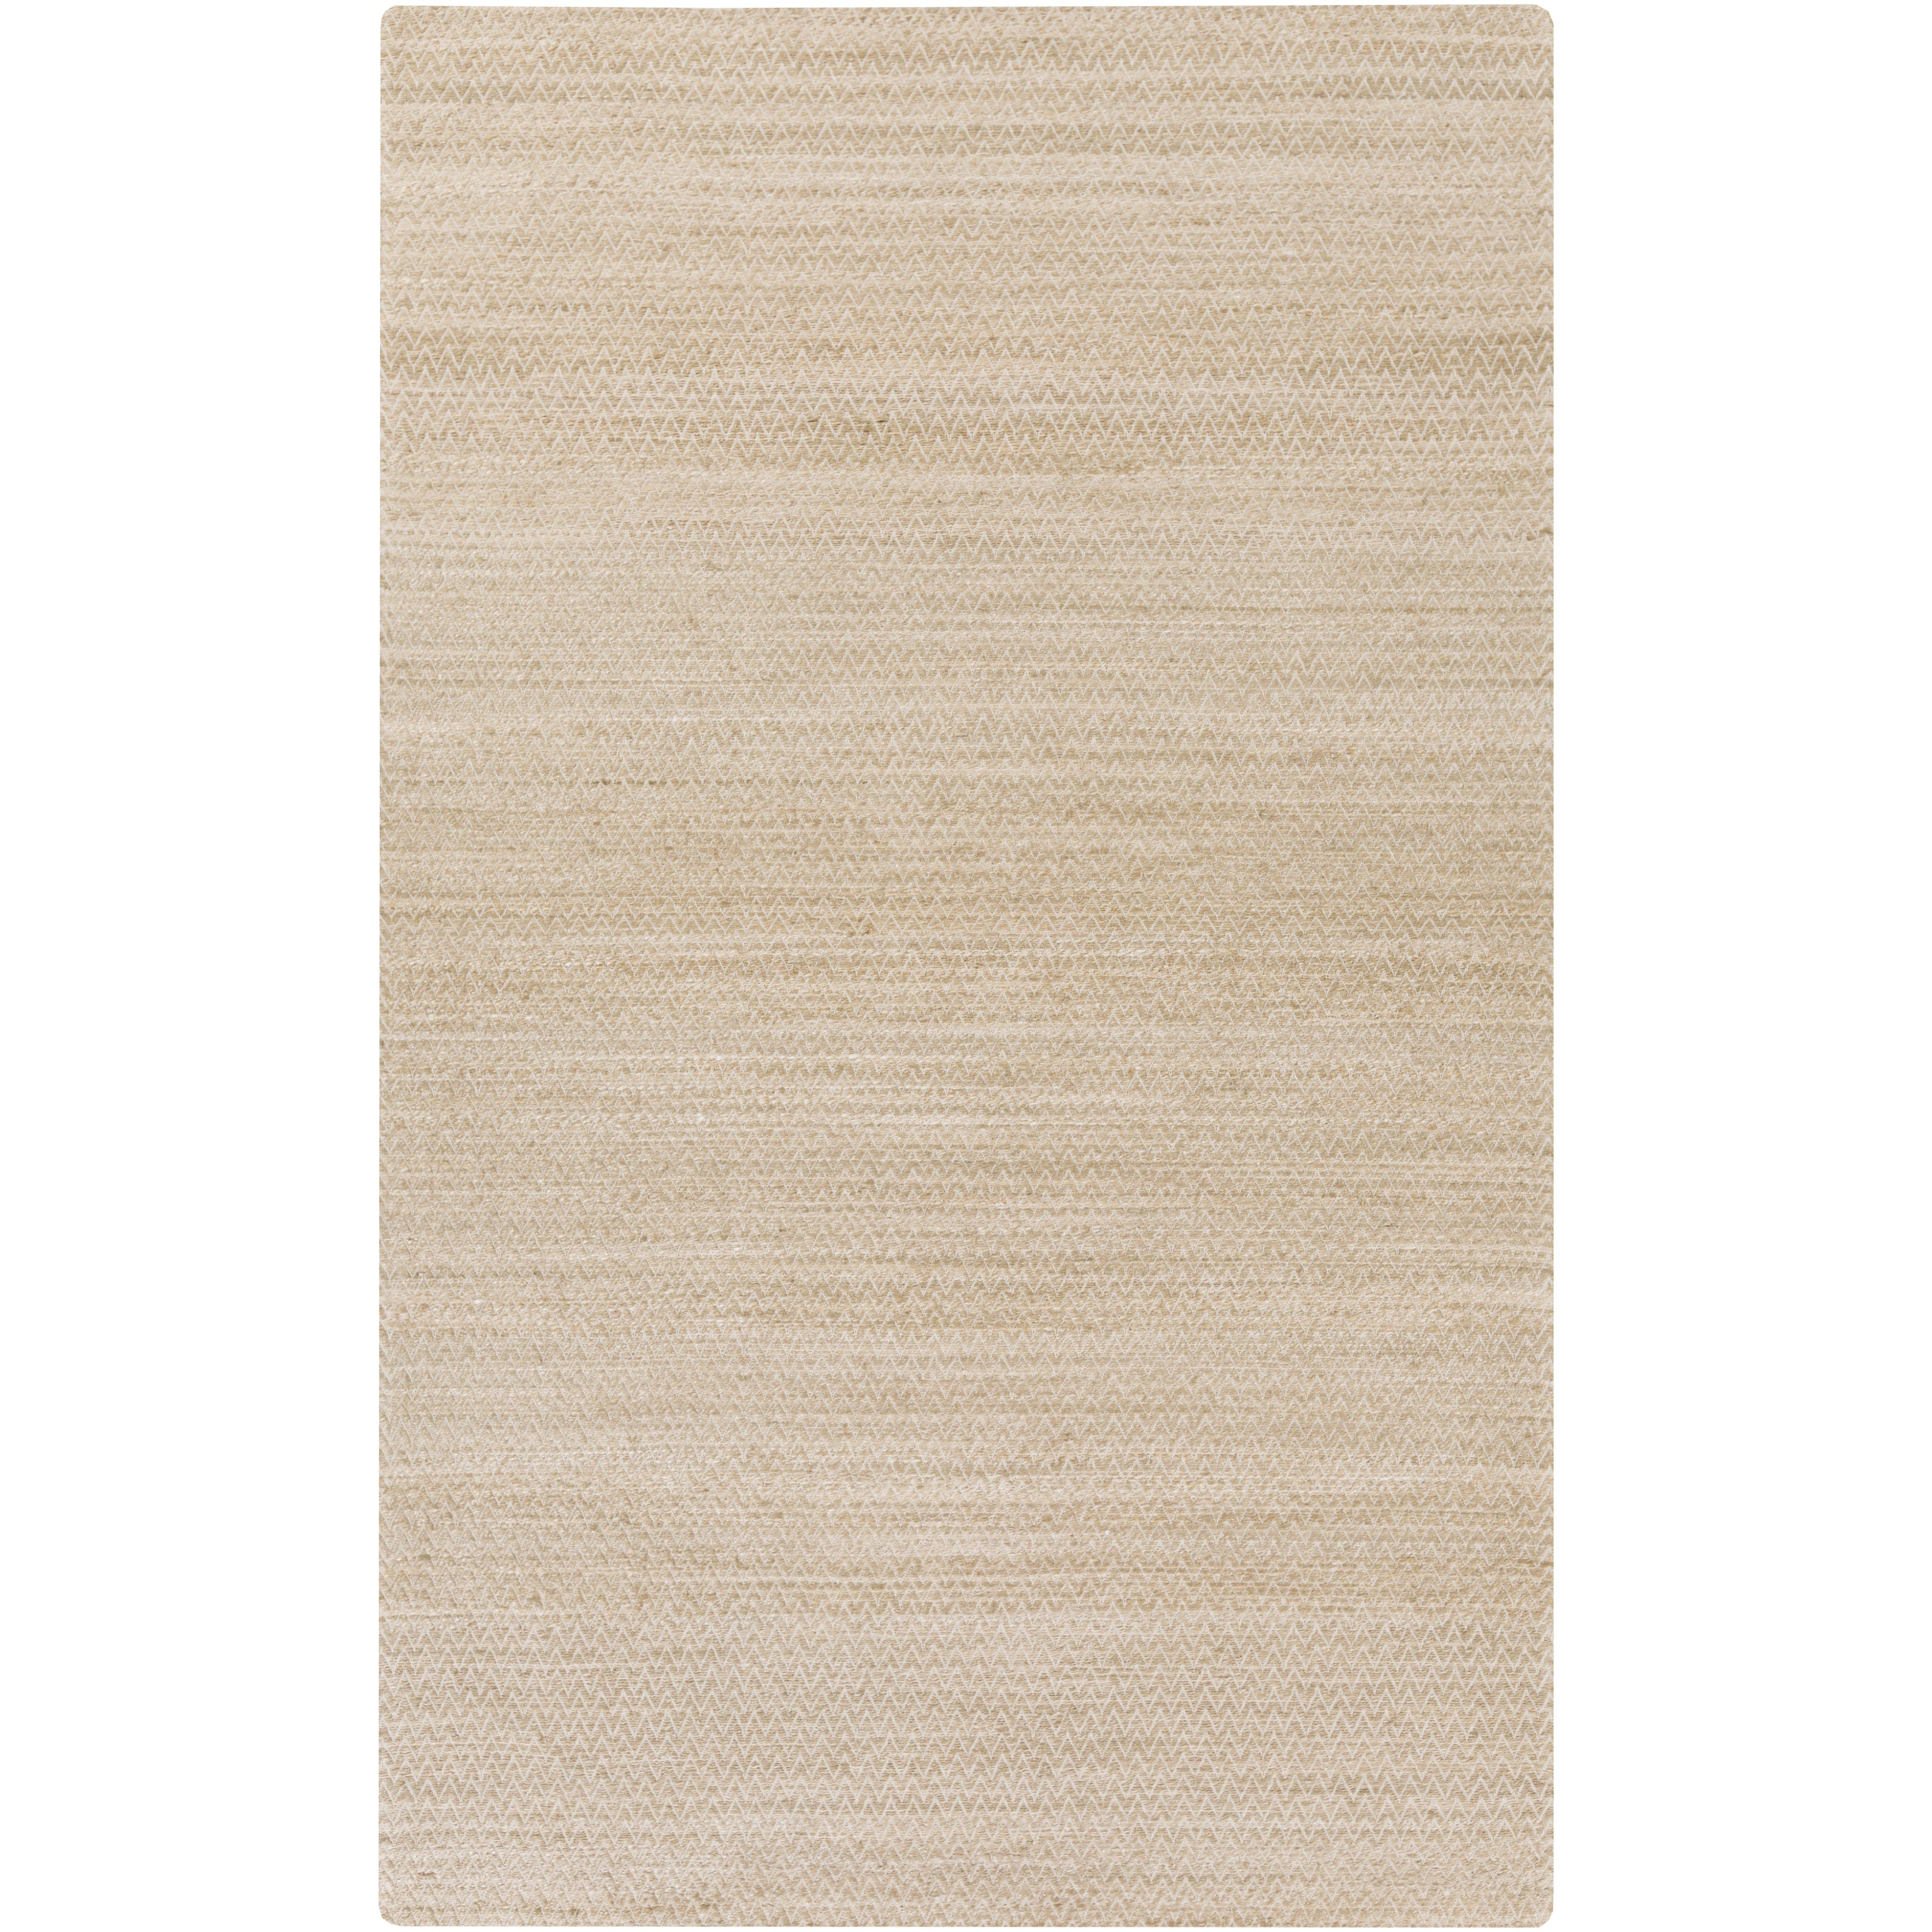 Surya Rugs Drift Wood 8' x 11' - Item Number: DRF3000-811